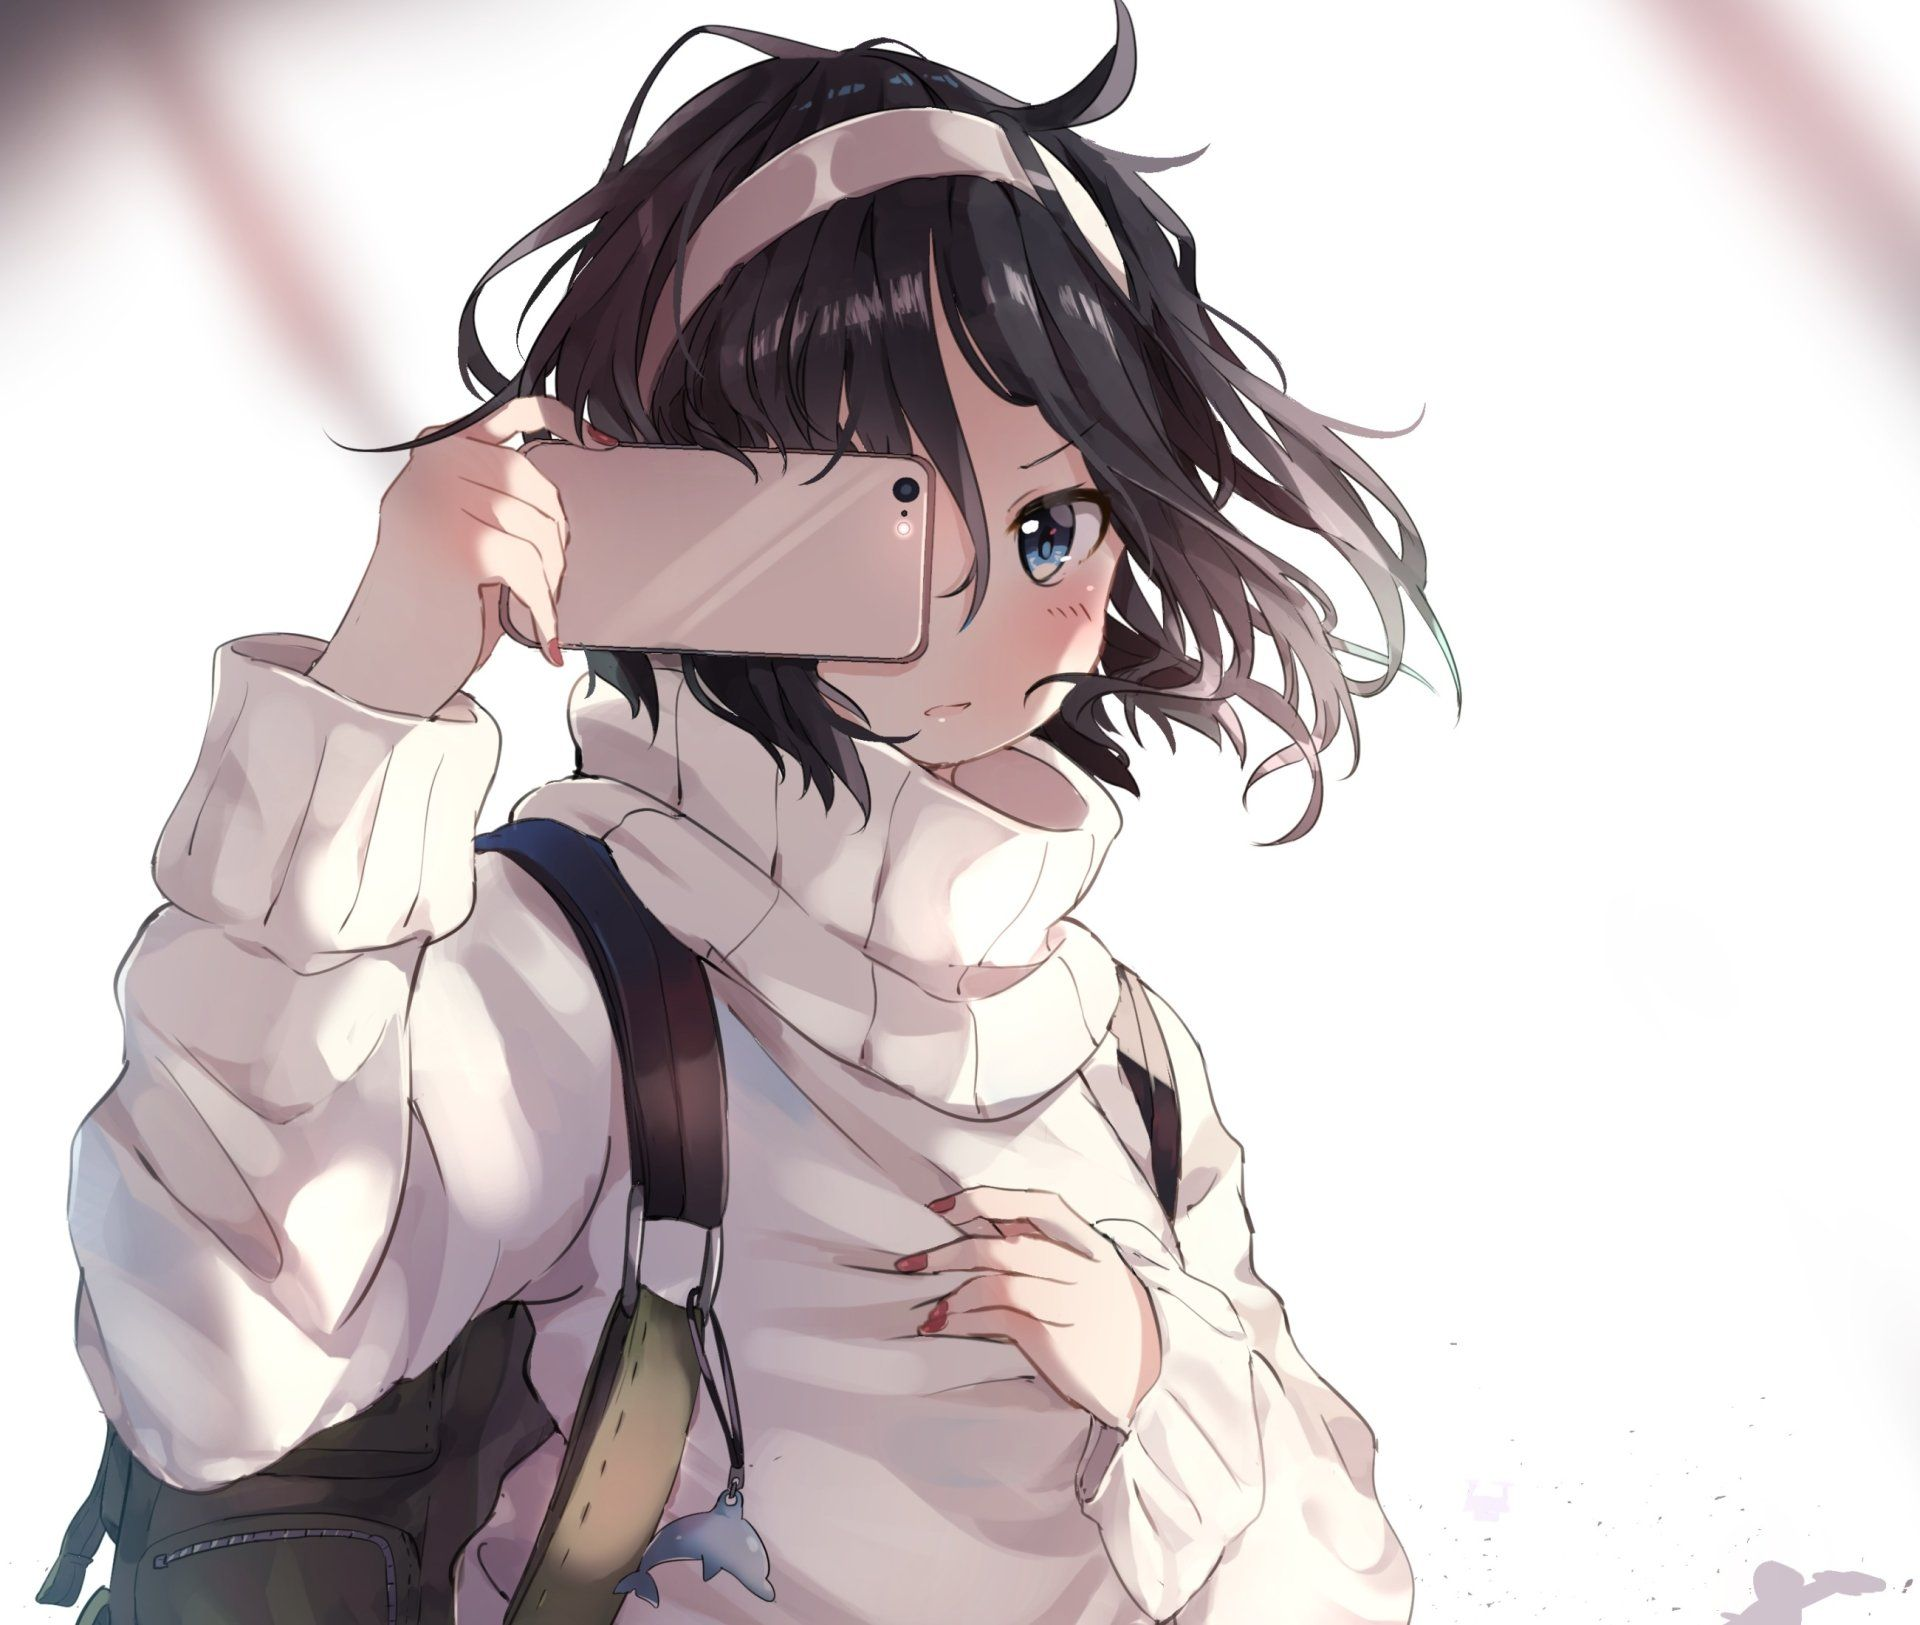 Anime Original Short Hair Black Hair Headband Smartphone